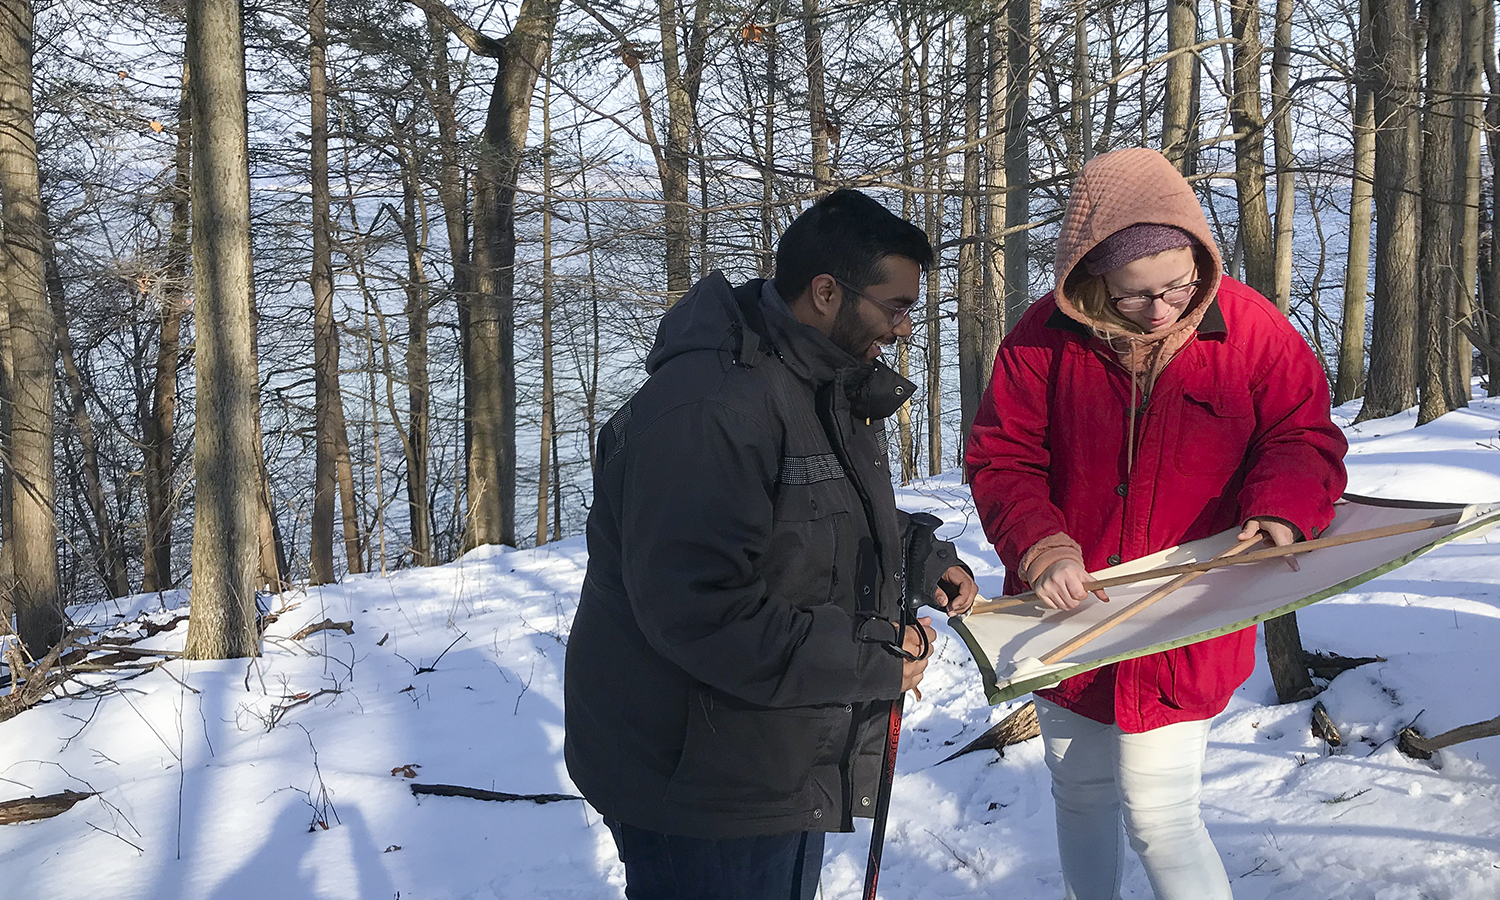 Under the direction of Associate Professor of Biology Meghan Brown, Alvin Randall â19 and Mikayla Meyer â20 look for biocontrol beetles in Hemlock trees at the VanRiper Preserve of the Finger Lakes Land Trust.